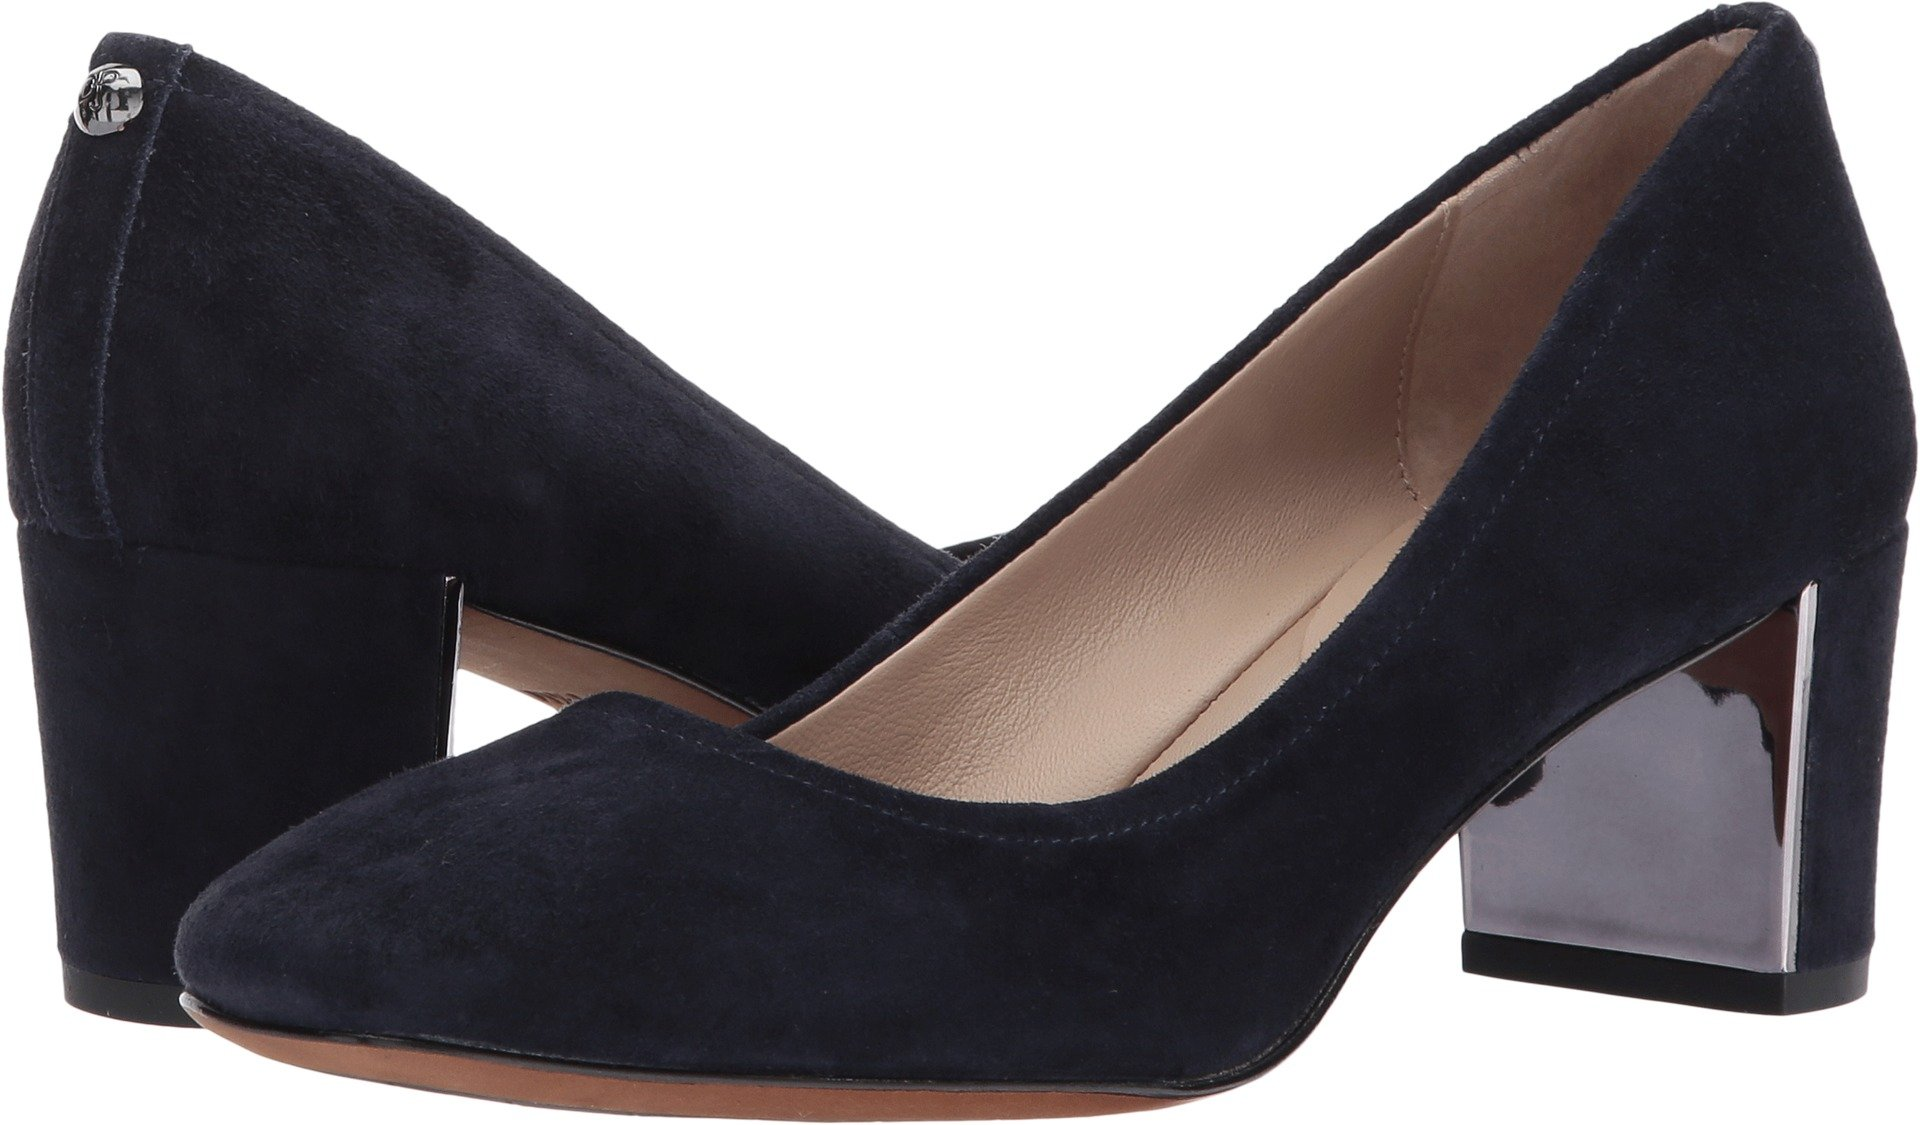 Donald J Pliner Women's Corin Pump, Orion, 8.5 M US by Donald J Pliner